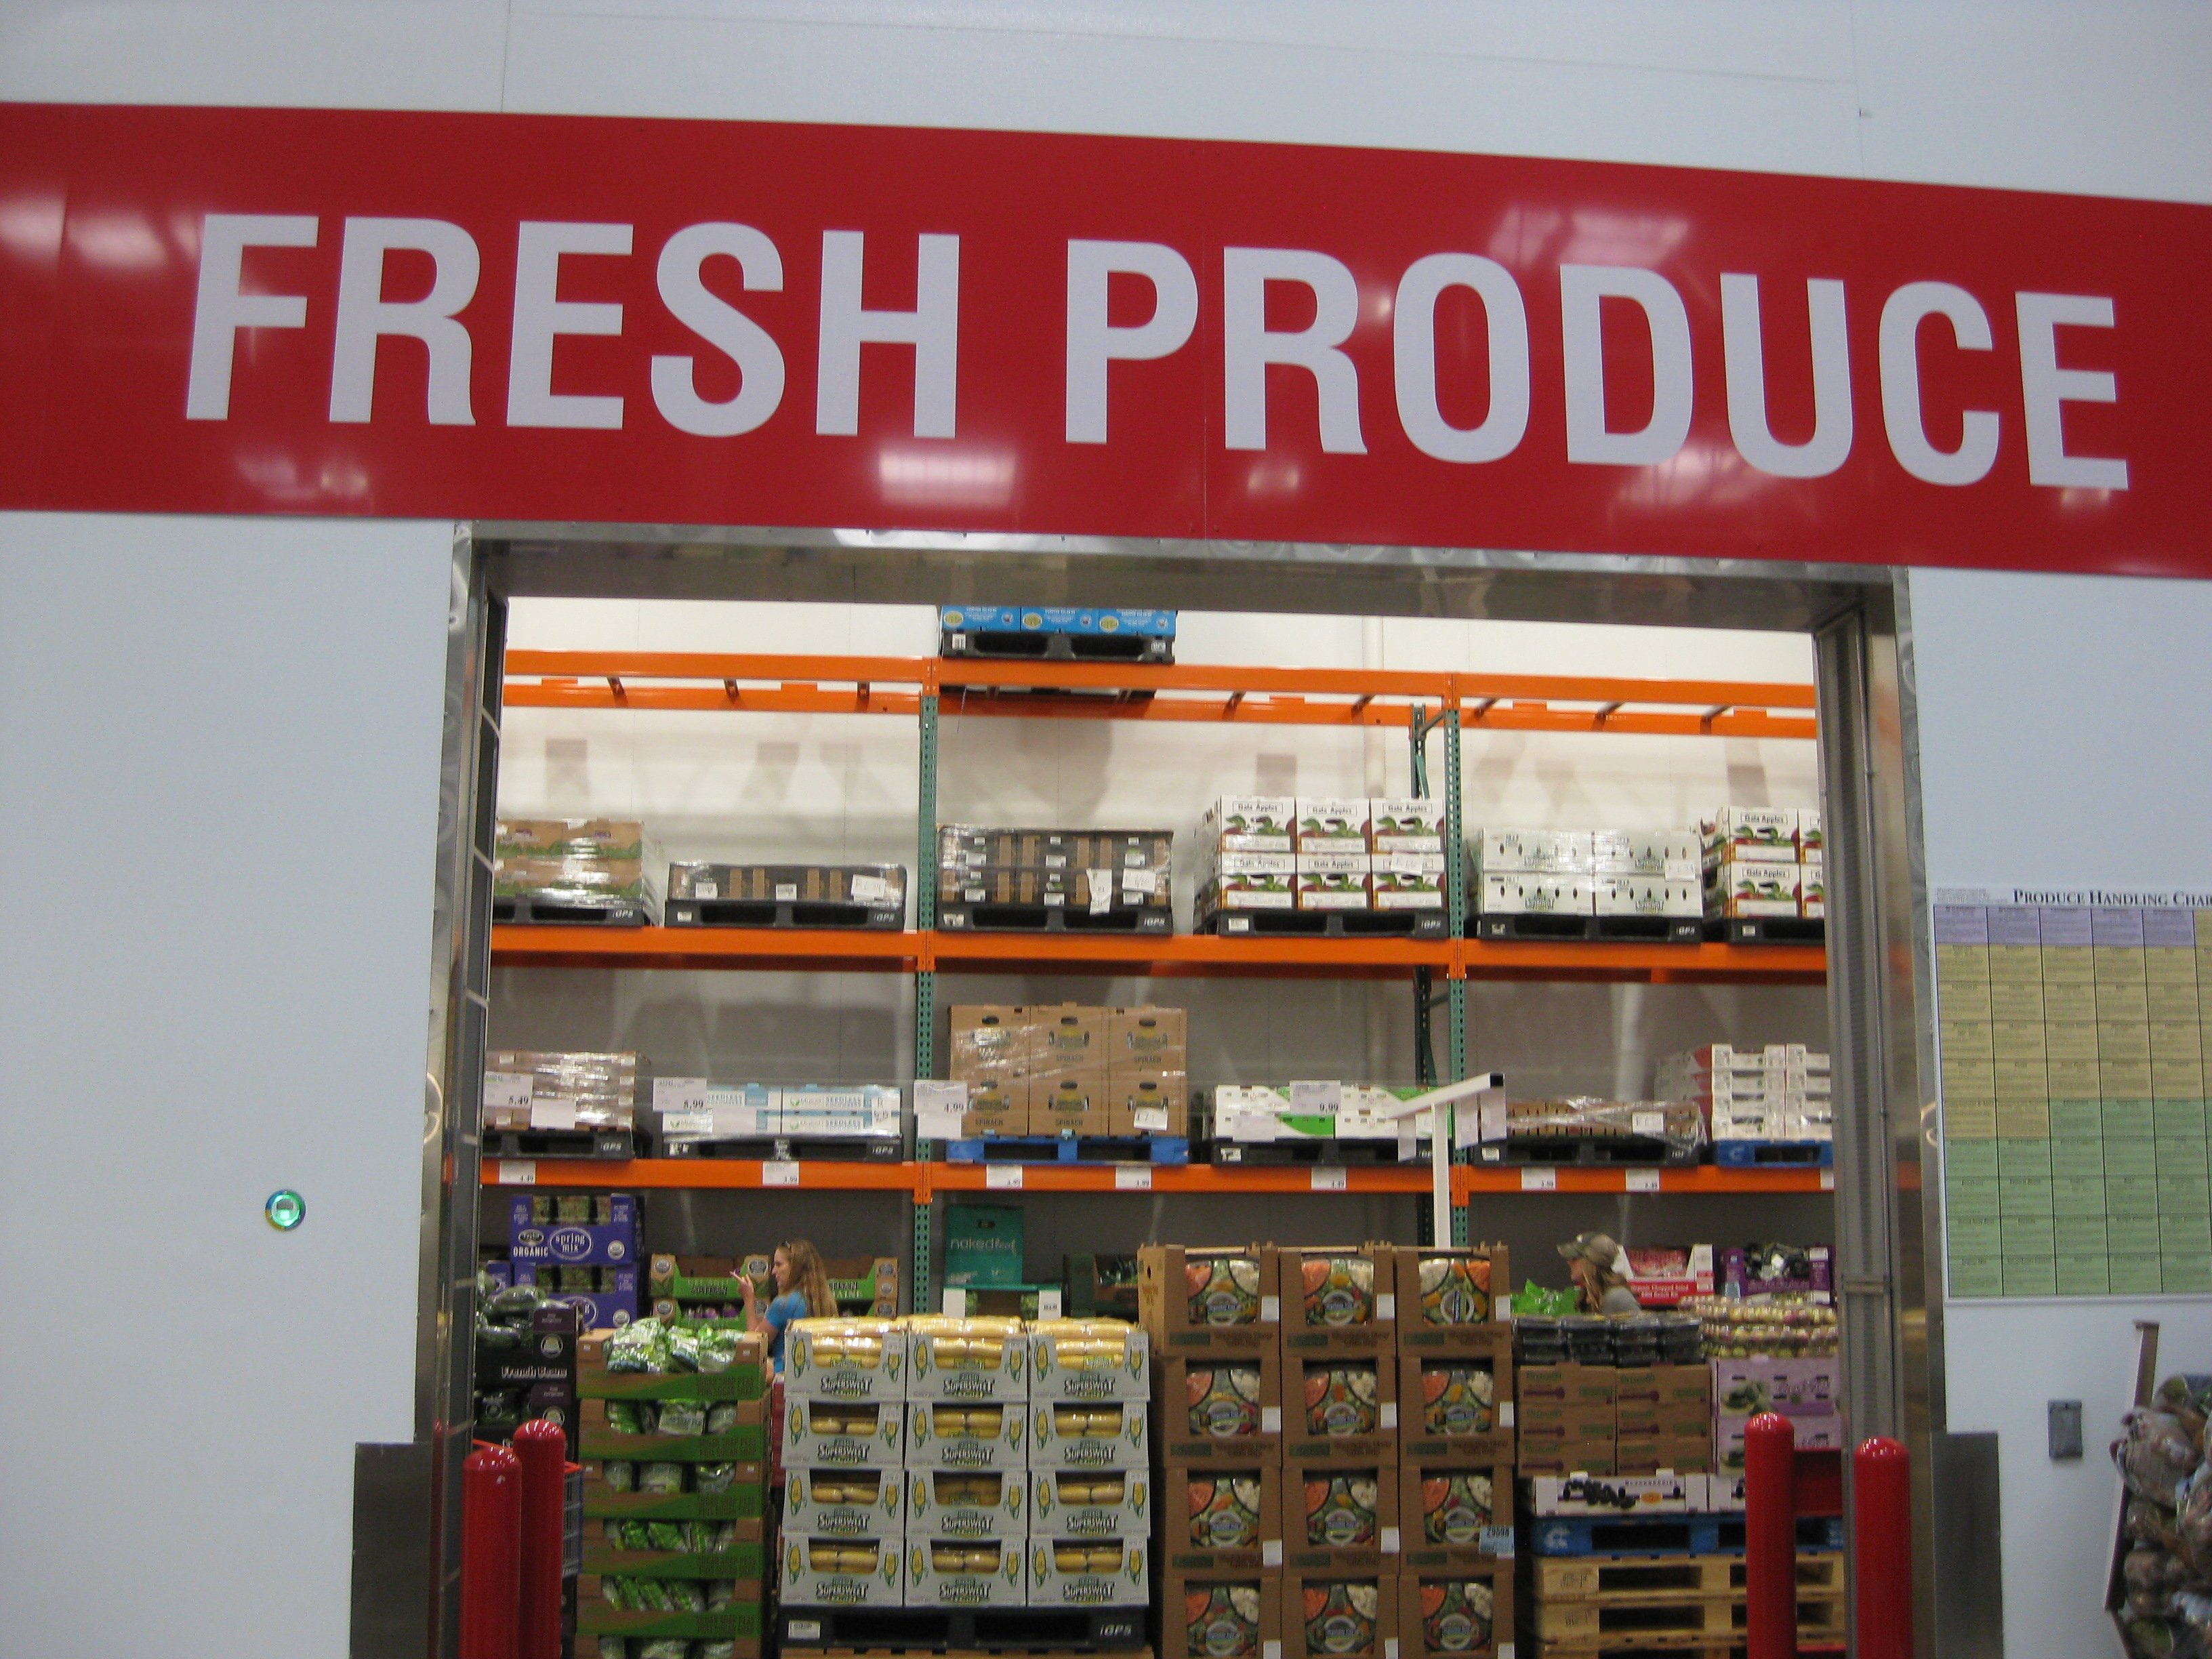 19 Foods That Are a Complete Waste of Money at Costco